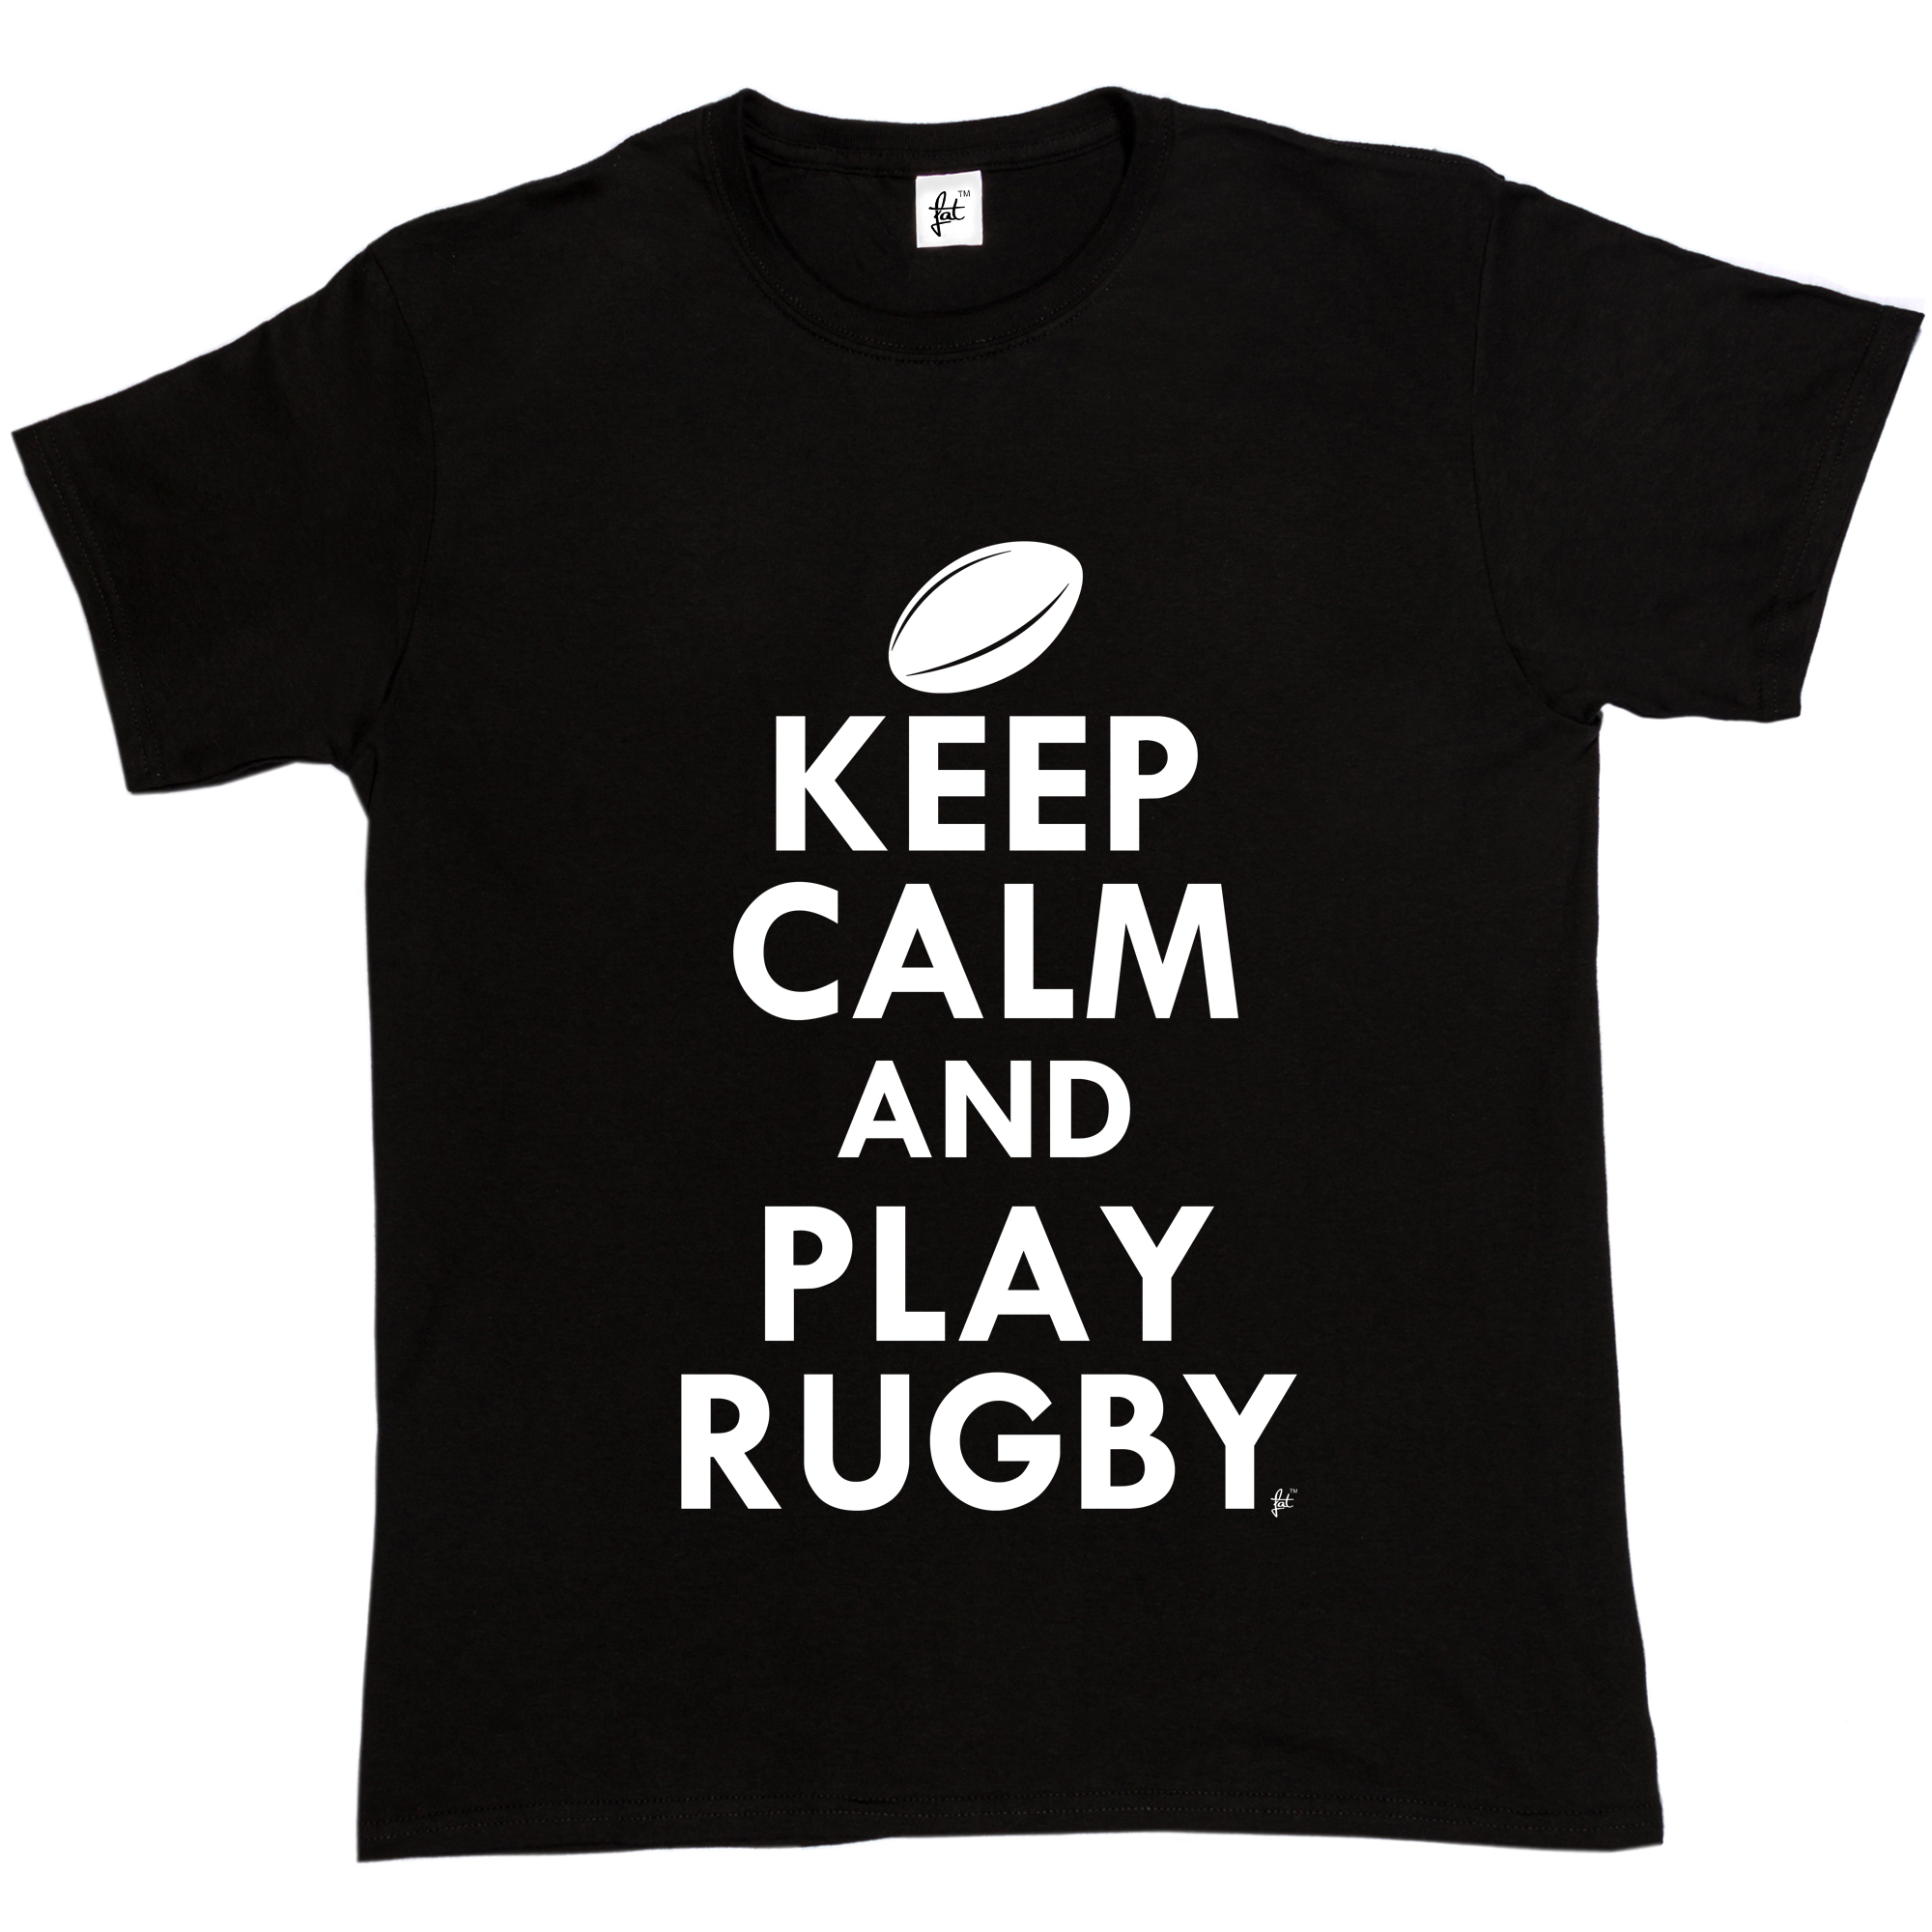 Design t shirt rugby - T Shirt Design Website Crew Neck Short Keep Calm Amp Play Rugbyer Rugby Ball Graphic